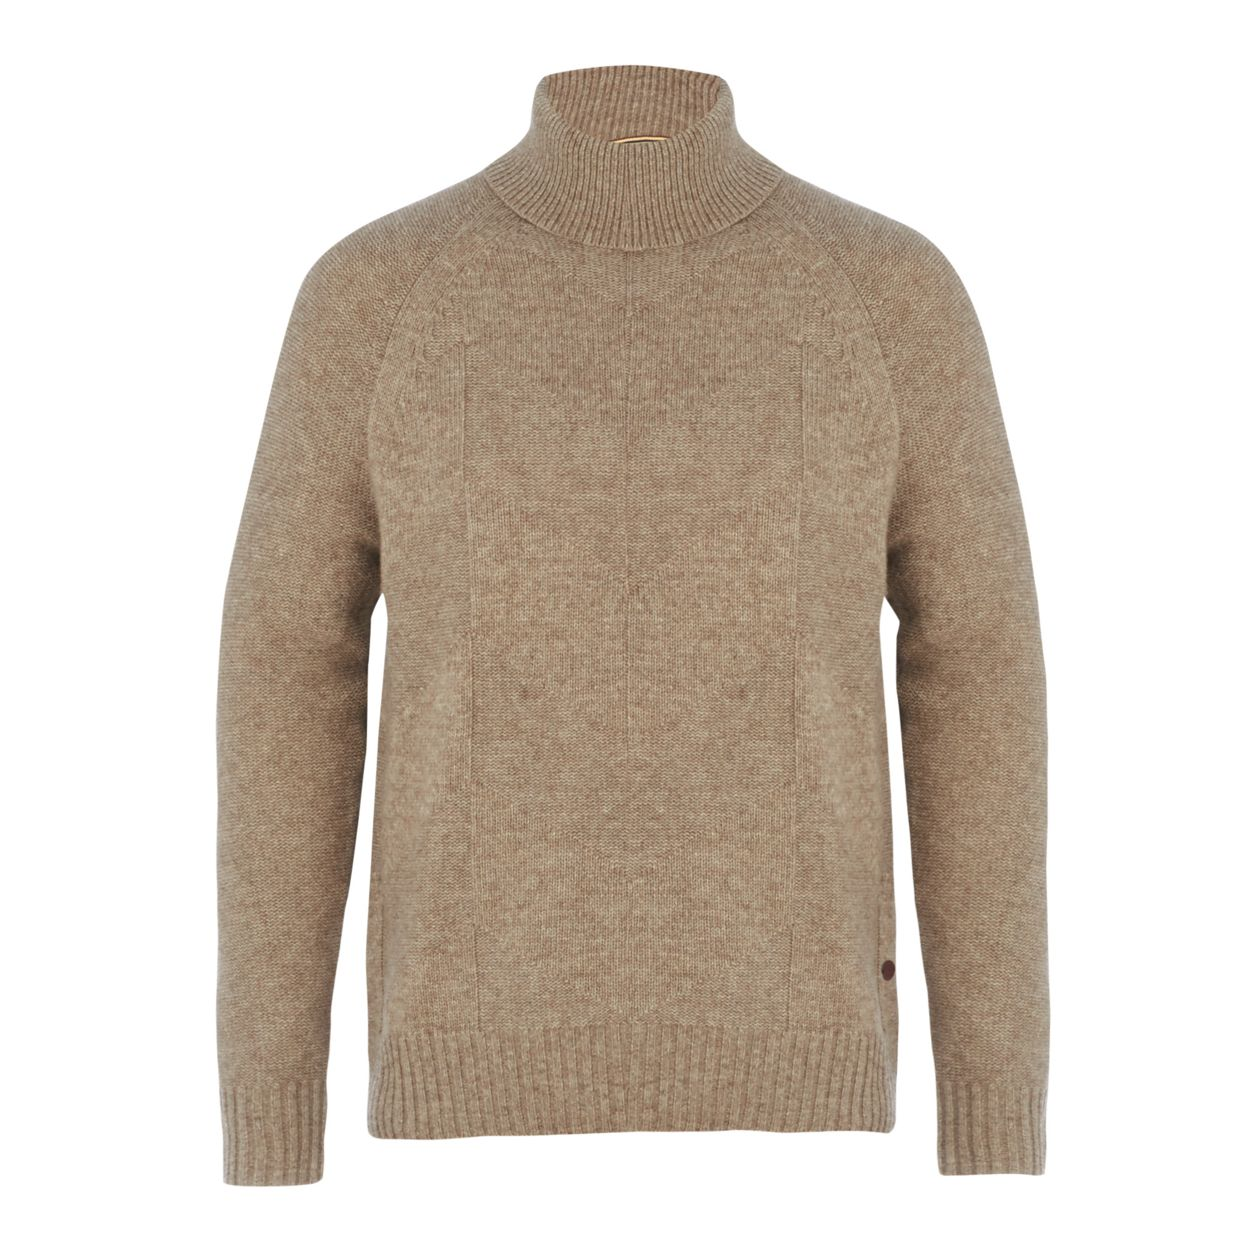 Hammond & Co. by Patrick Grant Natural chevron roll neck jumper